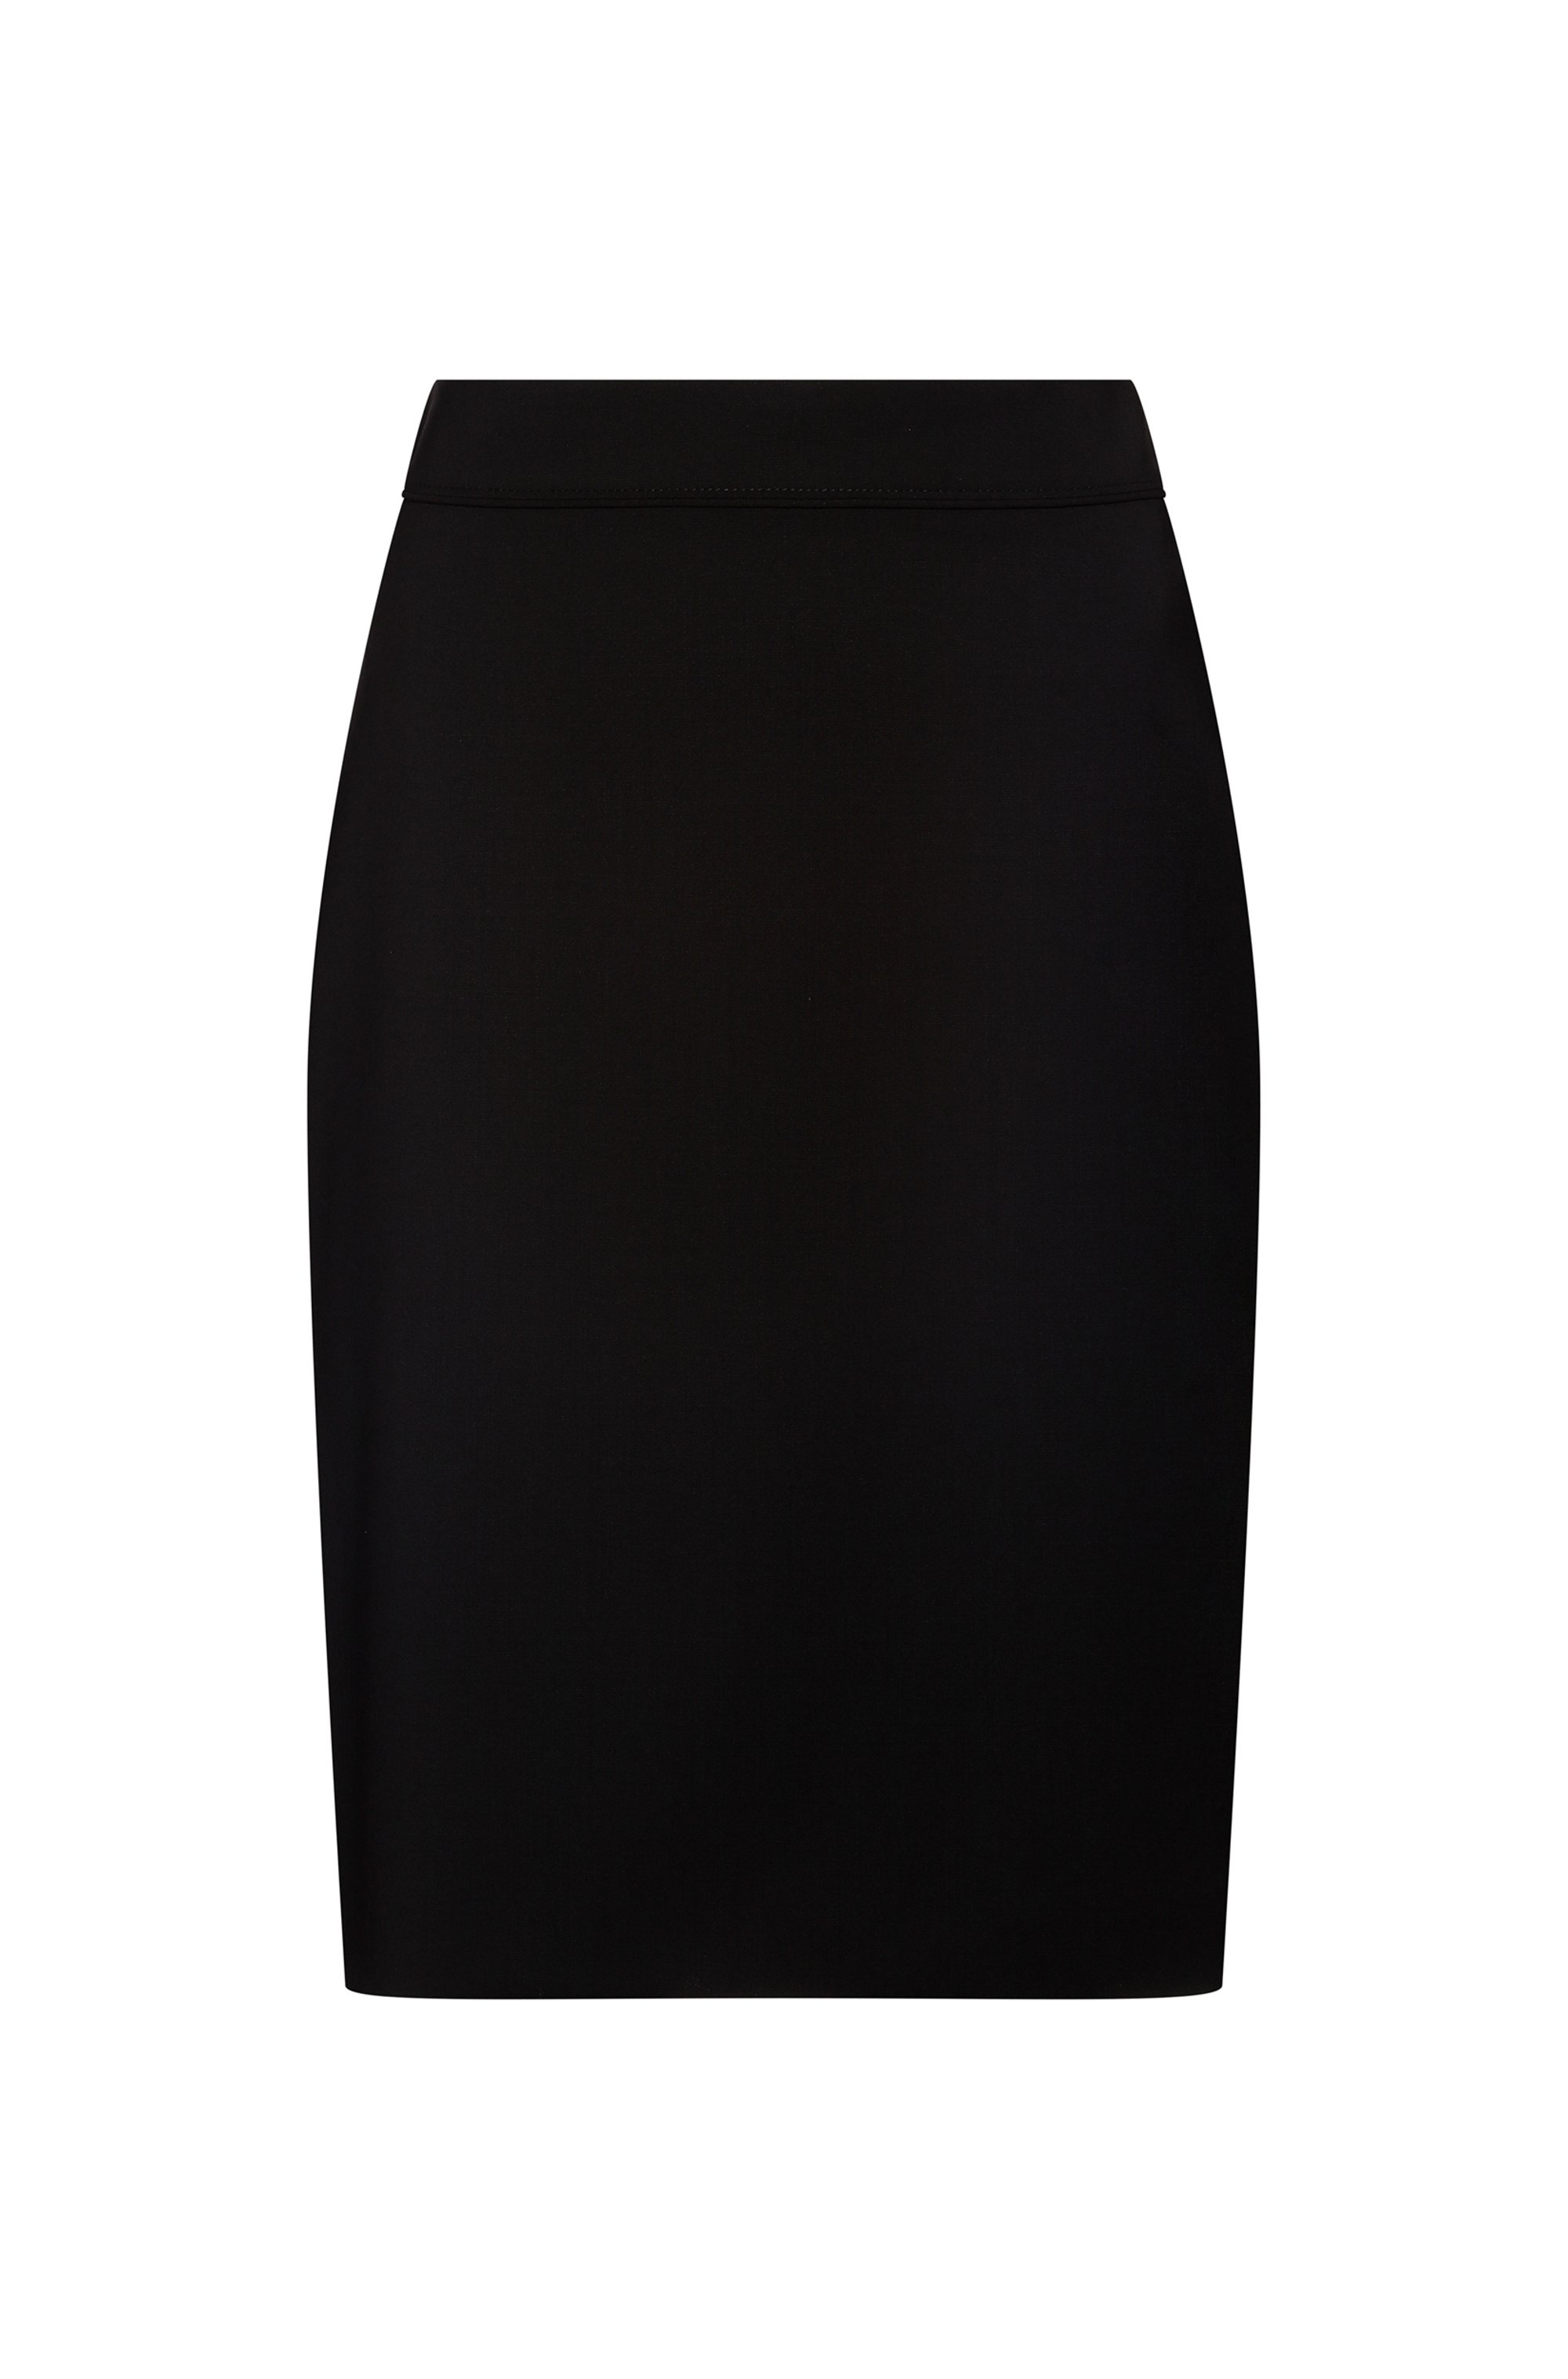 High-waisted pencil skirt in worsted stretch virgin wool, Black